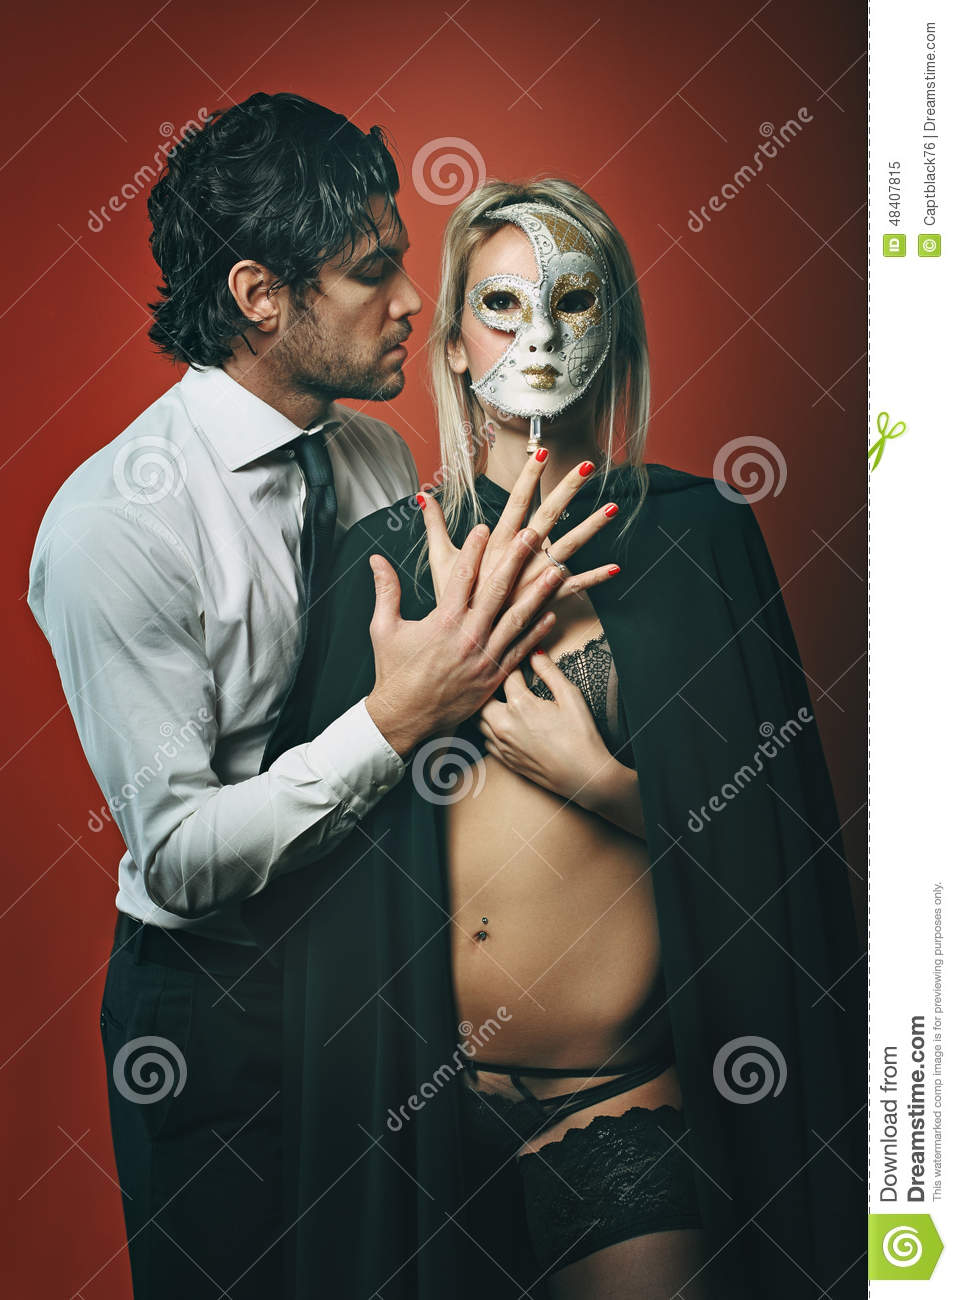 5f2bbbdec3fb4 Fashion Man With Masked Woman Stock Image - Image of passion ...